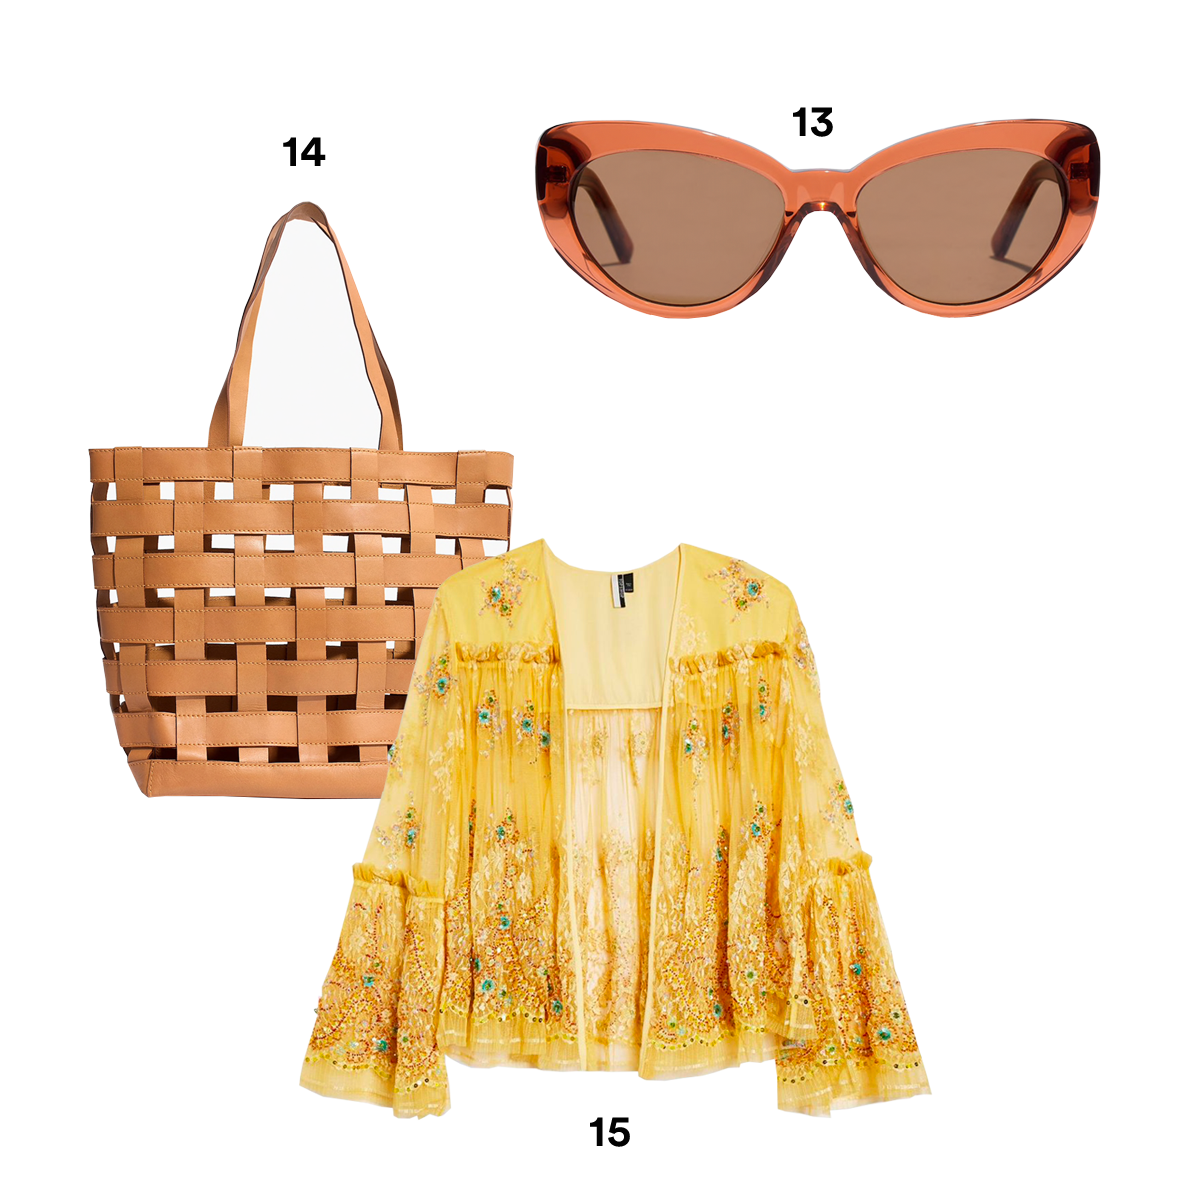 13.) MADEWELL Adair Cat-Eye Sunglasses. 14.) MADEWELL The Medium Transport Tote. 15.) TOPSHOP Lace-Embellished Jacket.